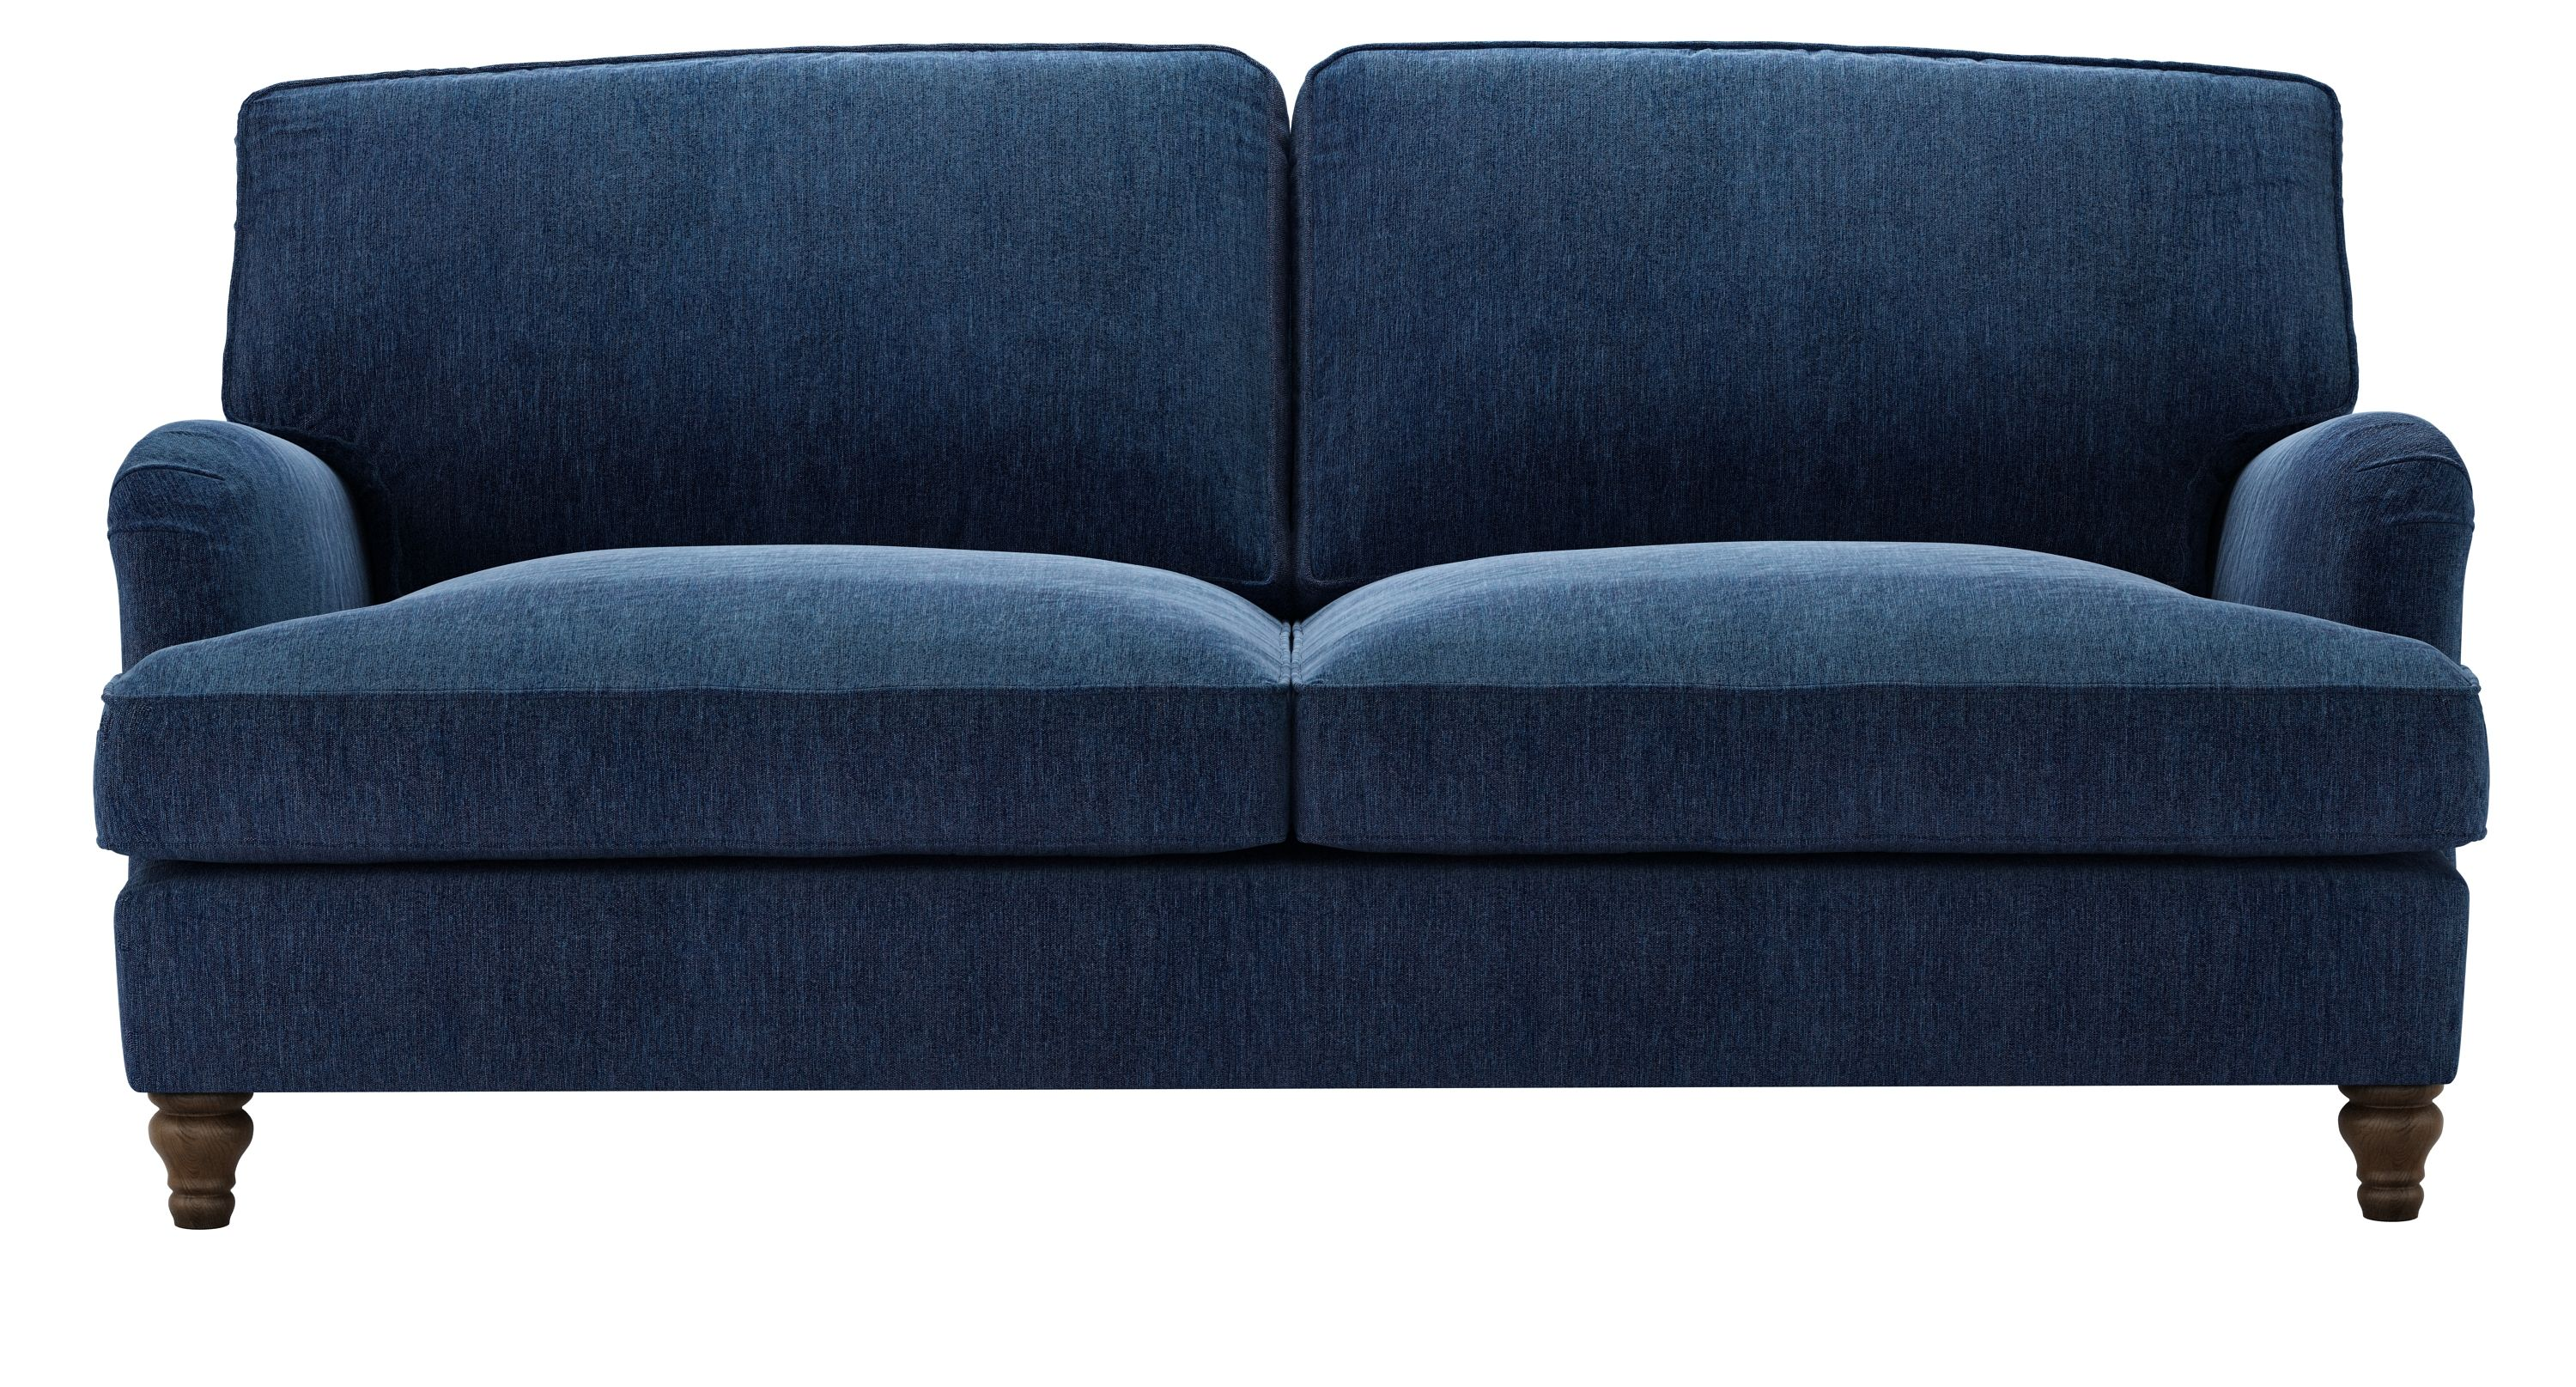 Bluebell Three Seat Sofa Bed in Como Chenille   Fabric ...